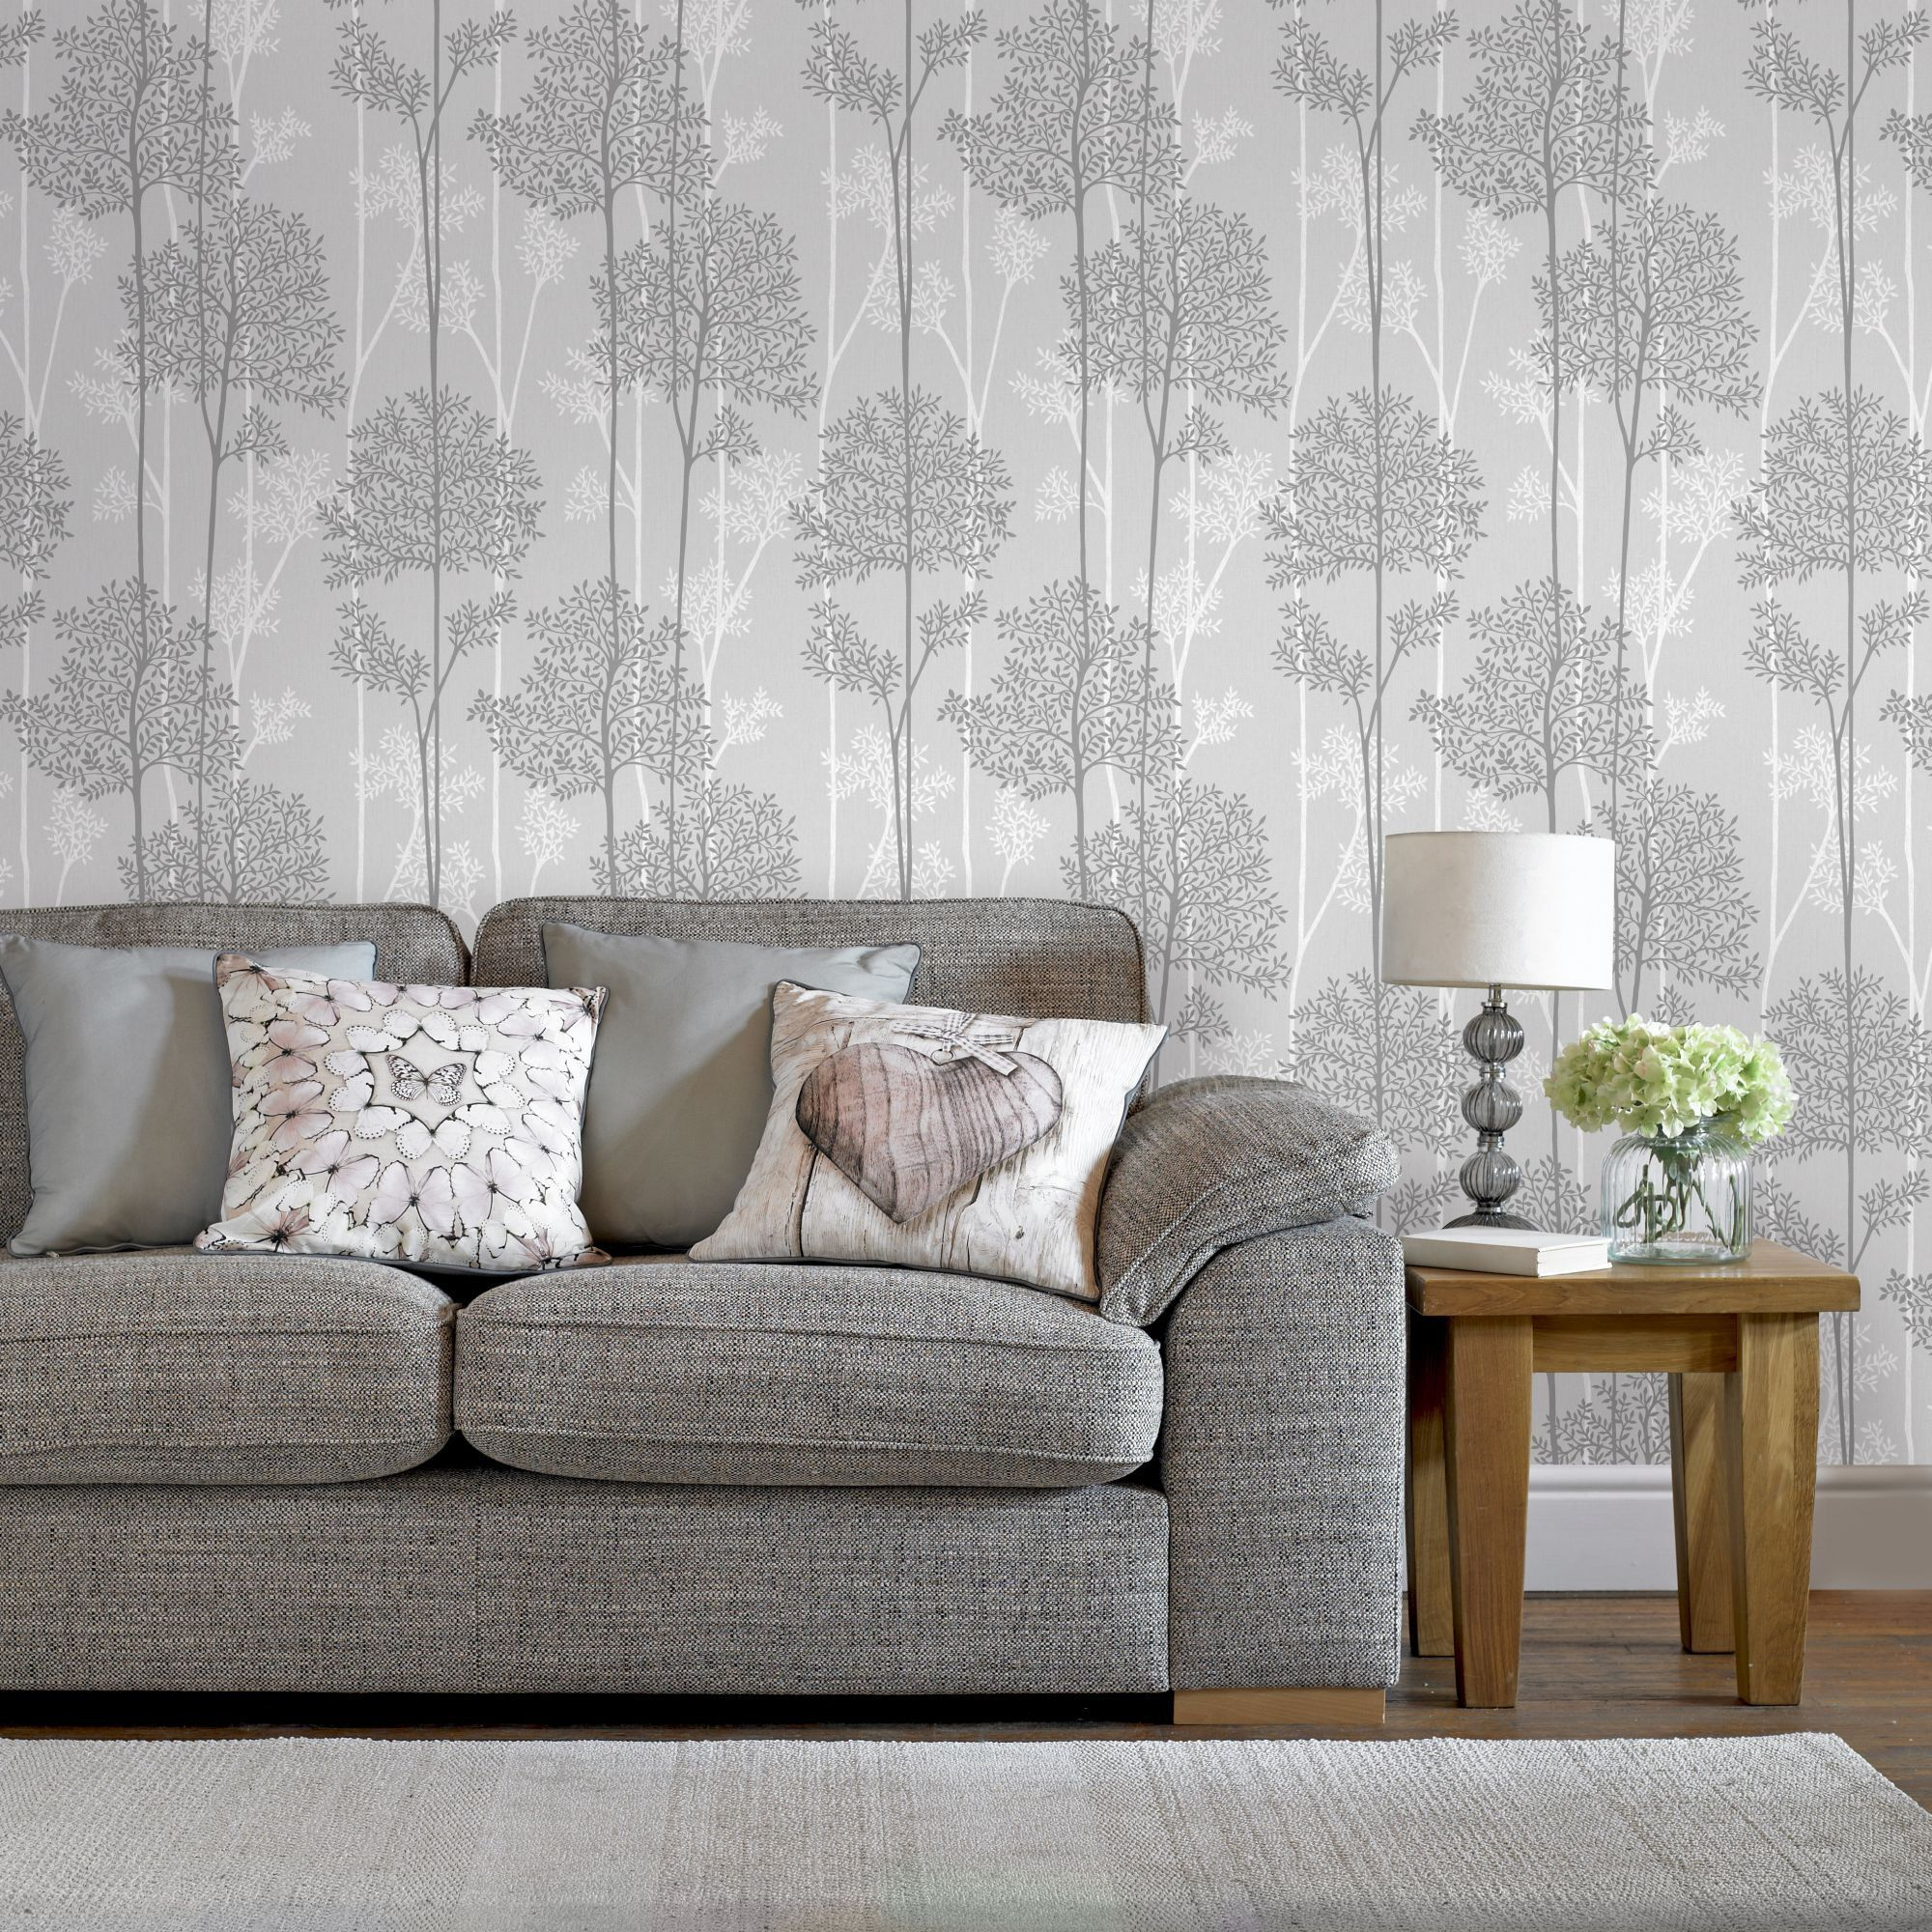 Graham Brown Eternal Gray Vinyl Strippable Wallpaper Covers 56 Sq Ft 33 287 The Home Depot Silver Wallpaper Wall Wallpaper Grey Wallpaper